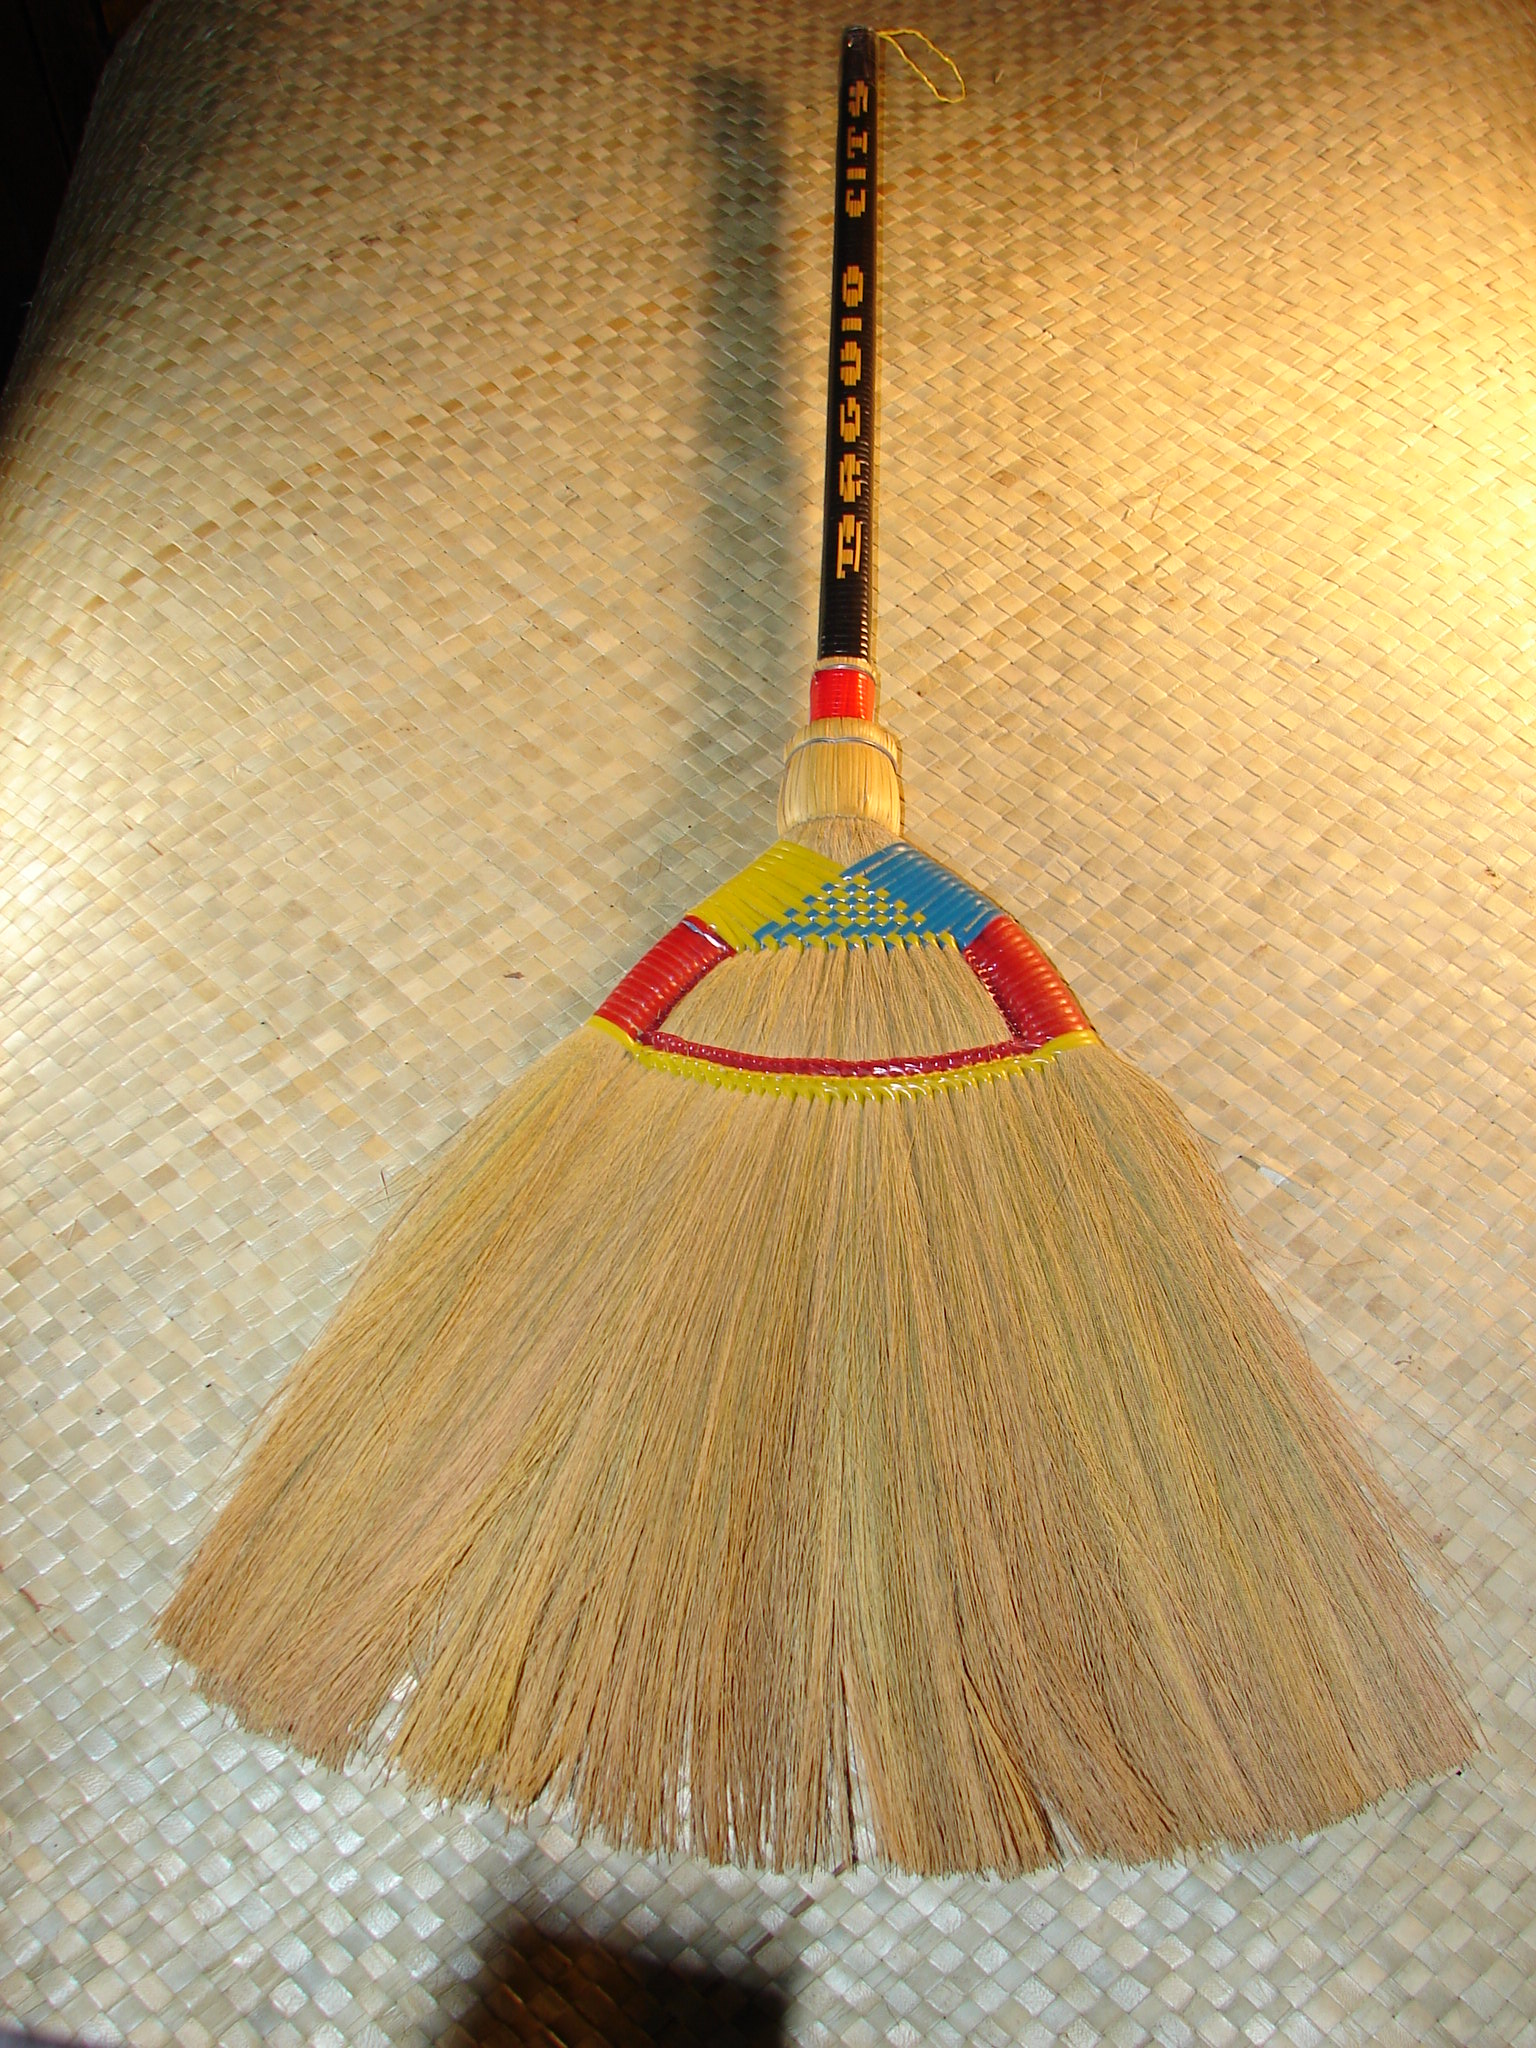 life and times of the filipino american the filipino broom